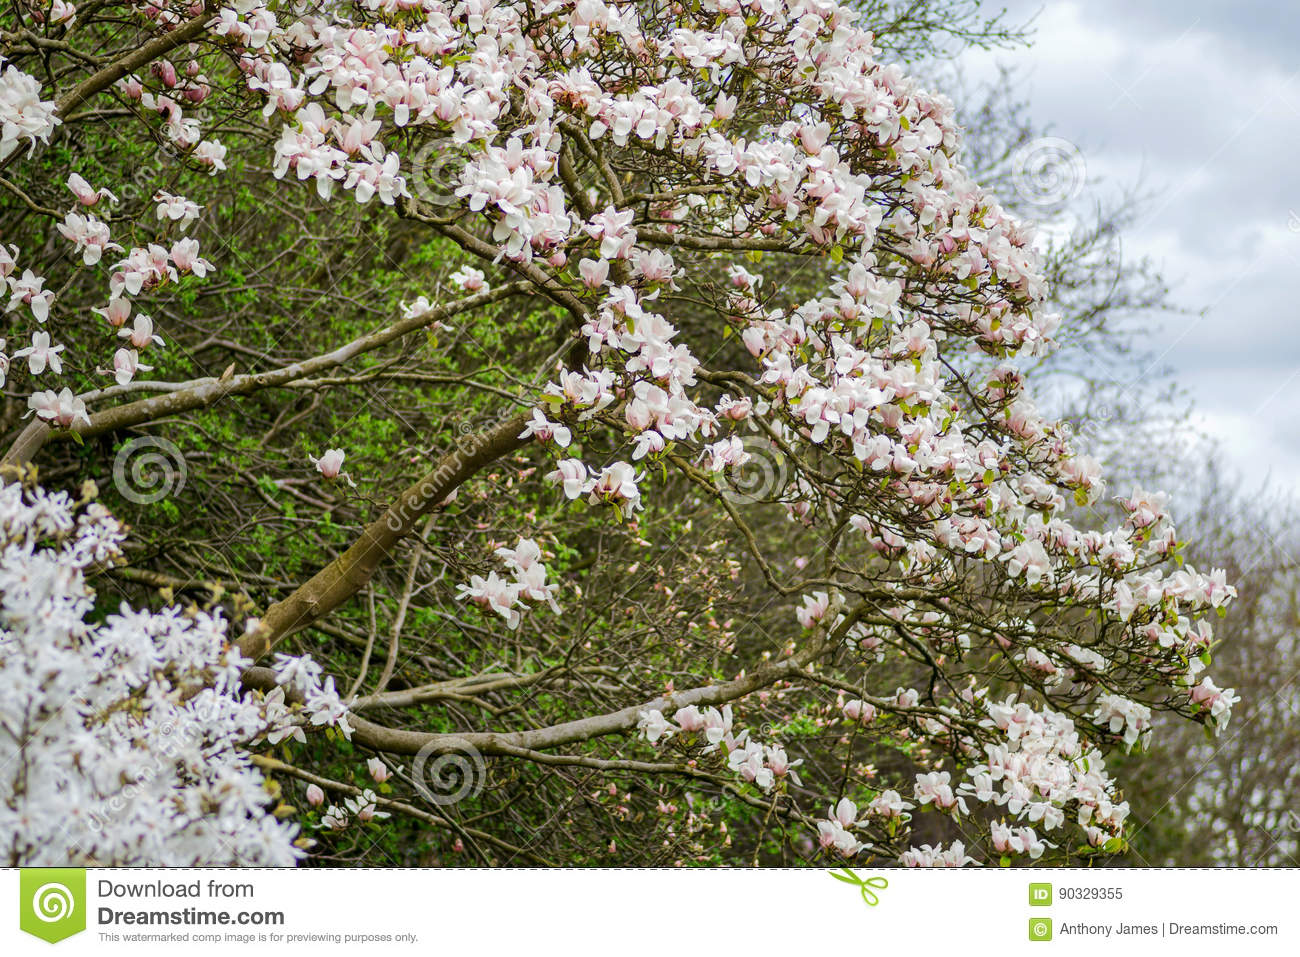 Magnolia White Flowers On A Tree In A Park In The Countryside In The